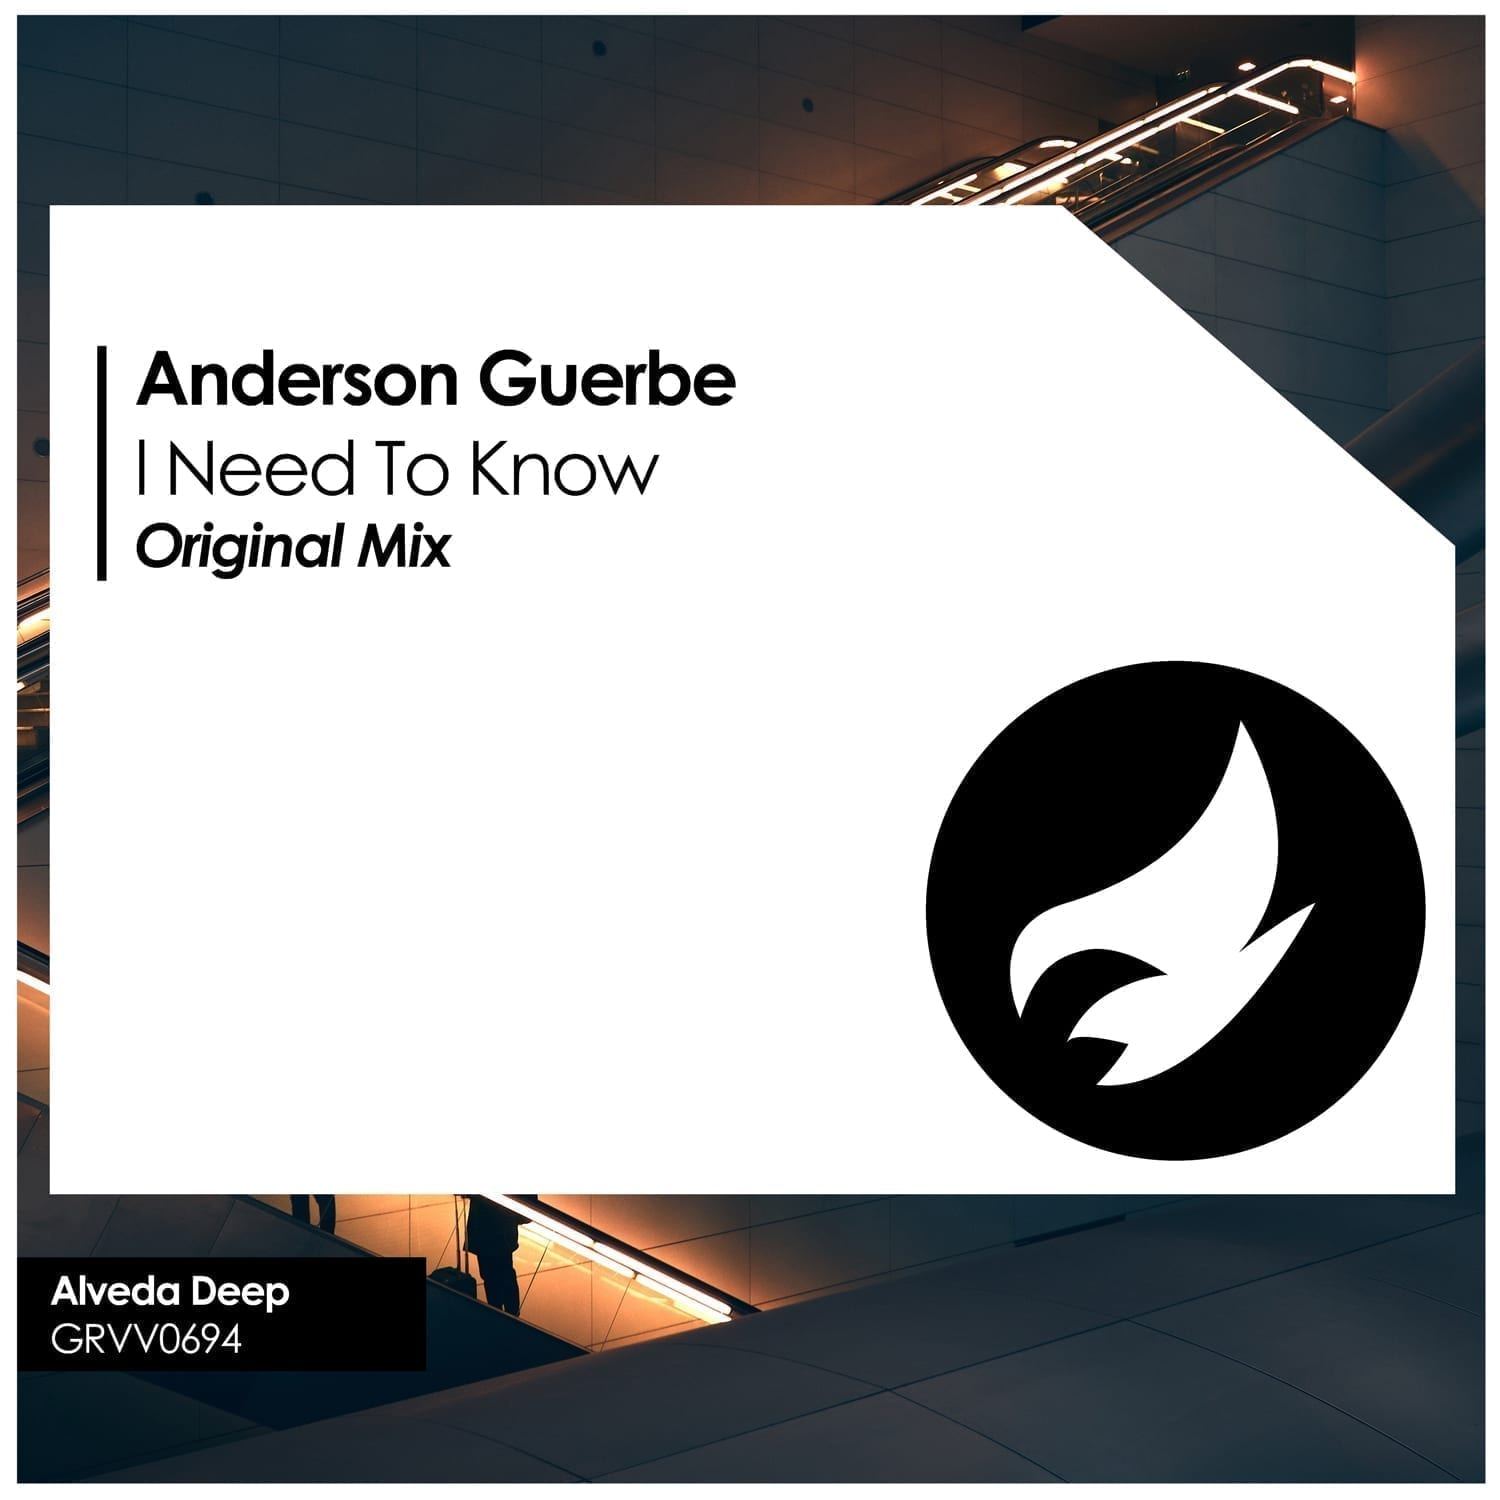 """Anderson Guerbe's new single """"I Need To Know"""" is out on Aveda Deep"""